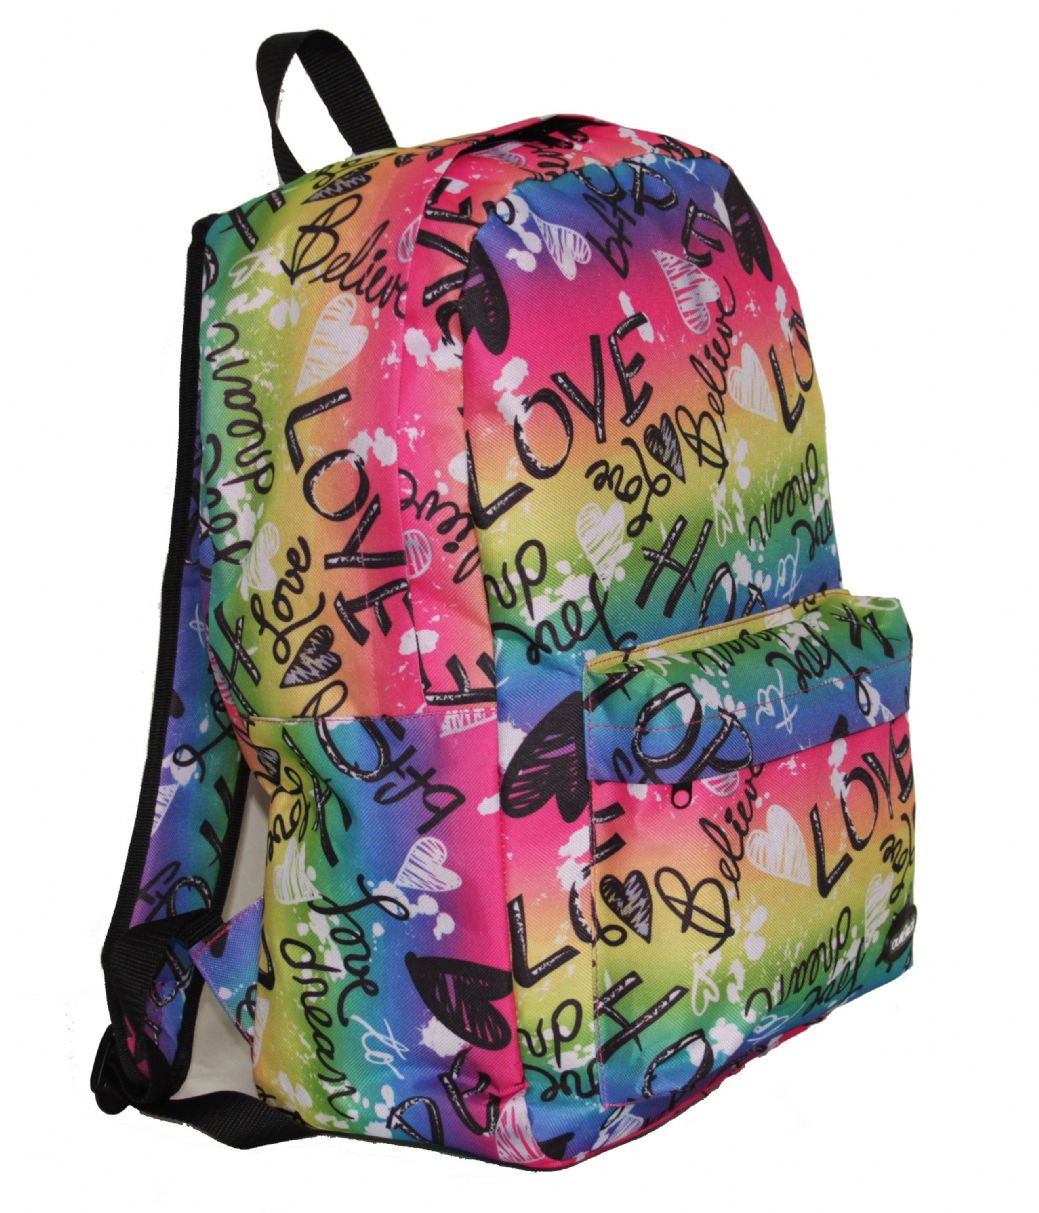 10 Stylish School and College Bags for Girls 2015 10 Stylish School and College Bags for Girls 2015 College Bags for Girls 2015 10